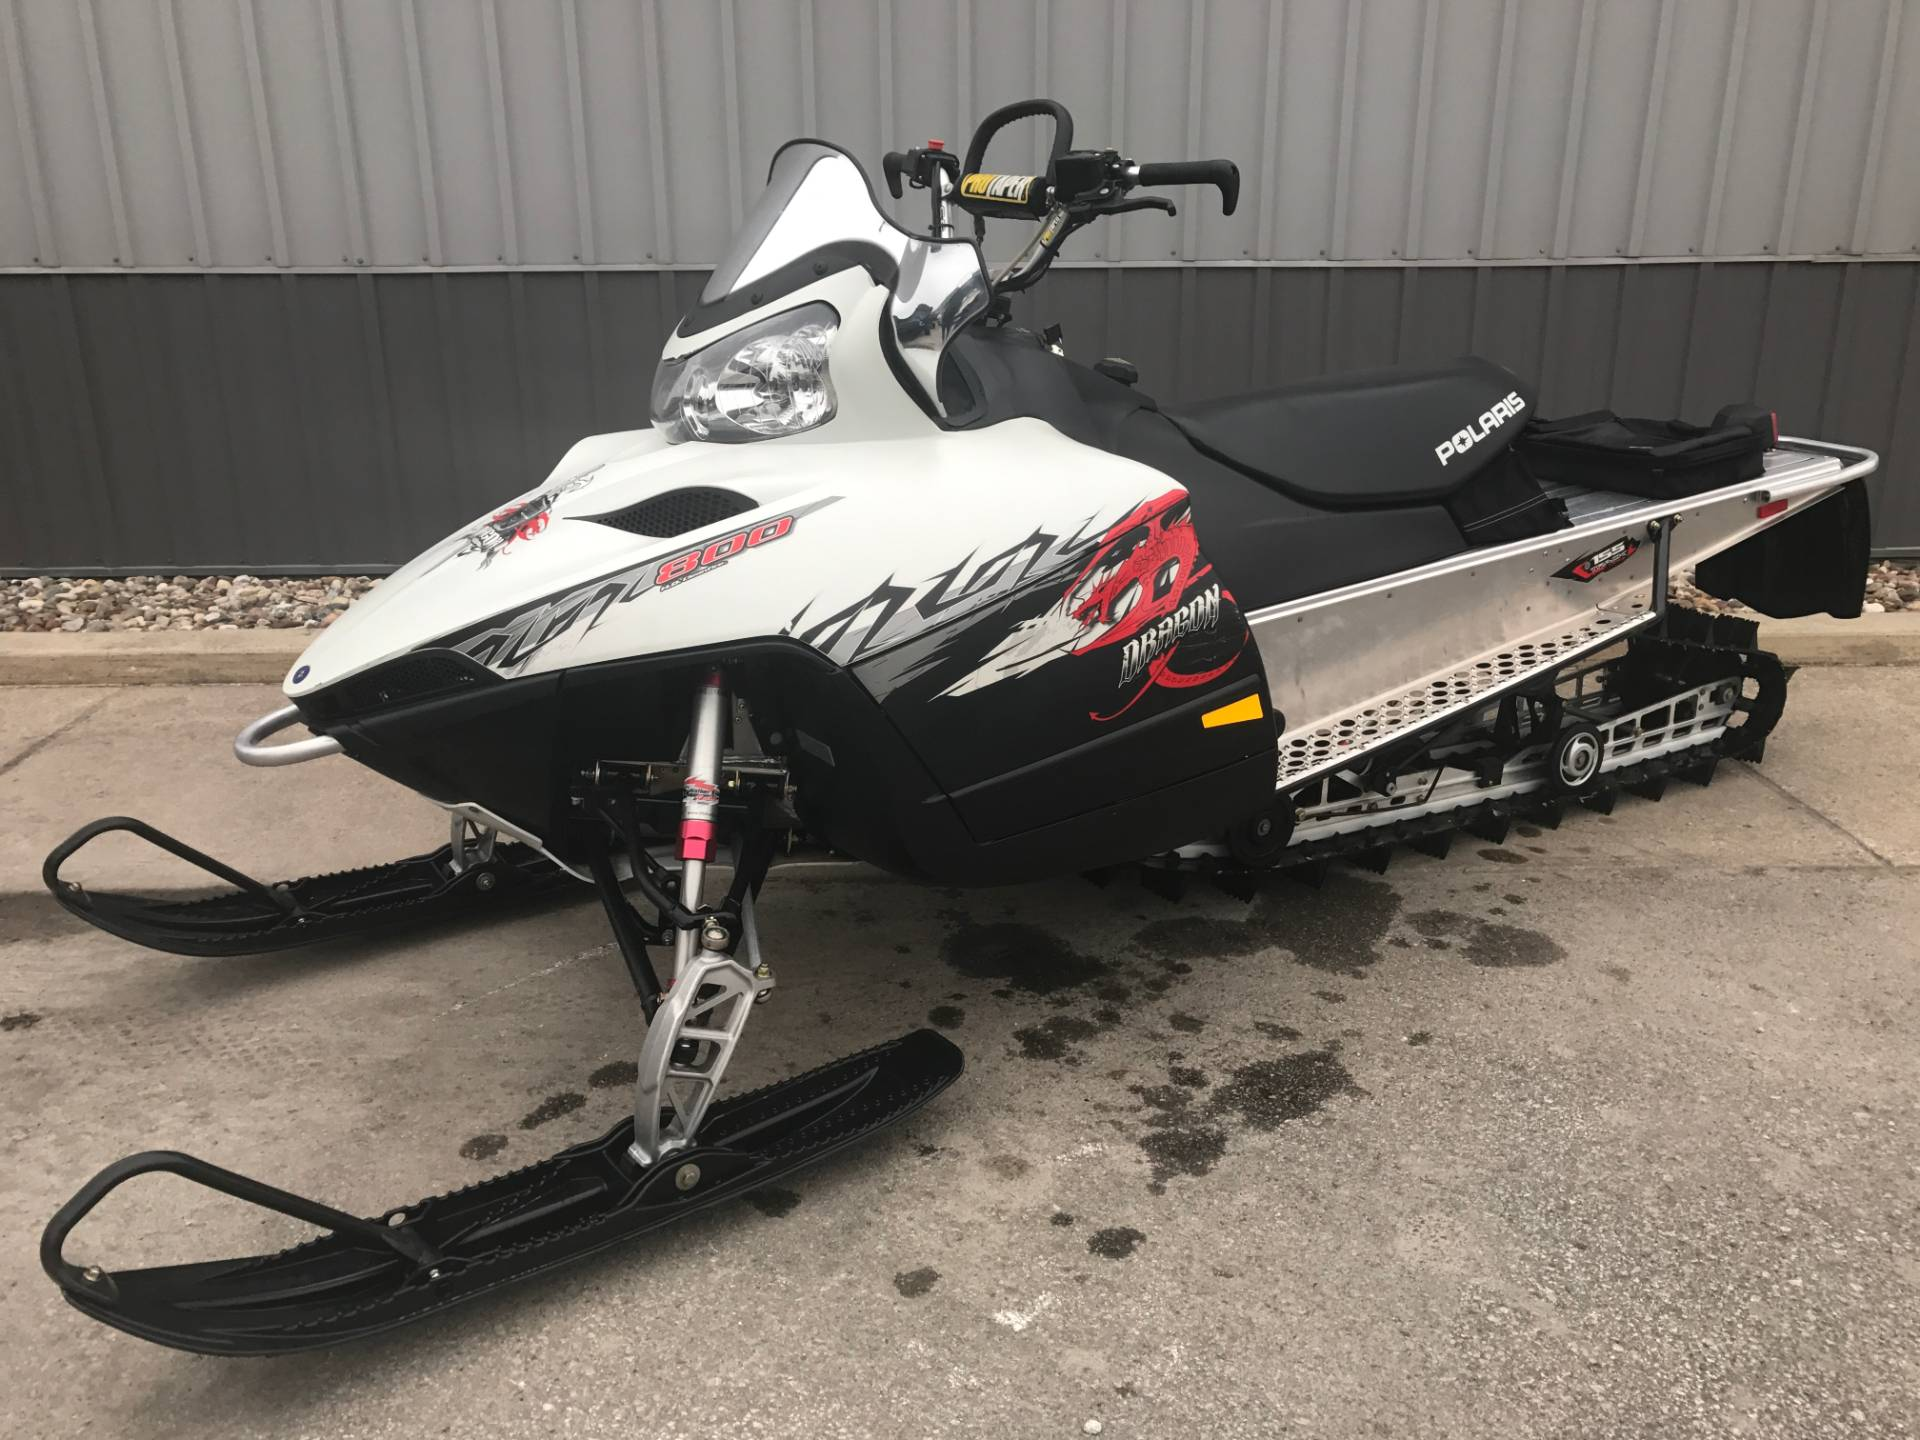 2009 polaris dragon 800 manual